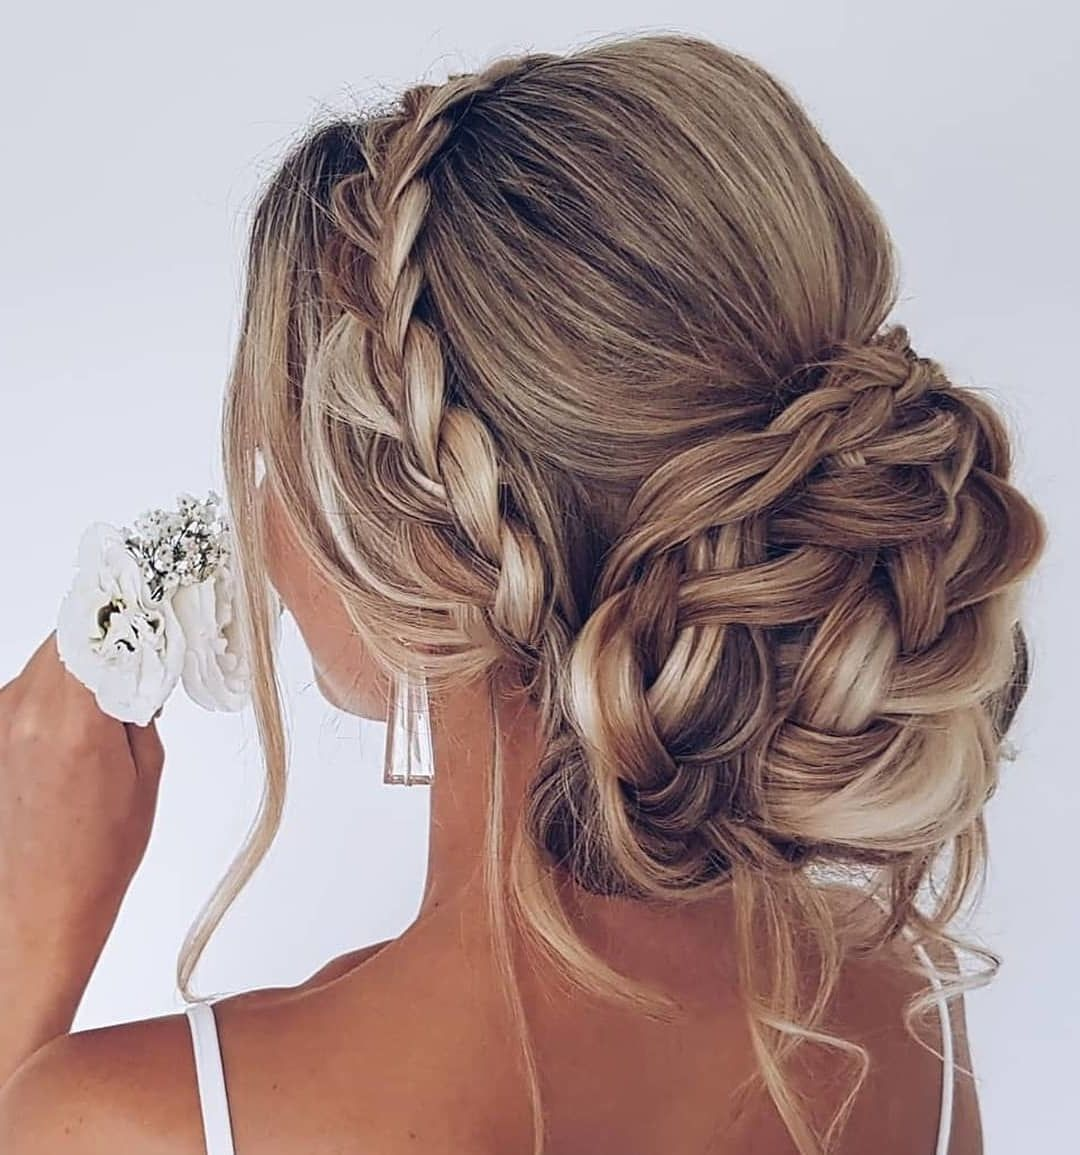 12 Updo Wedding Hairstyles for Long Hair - Best Wedding Style